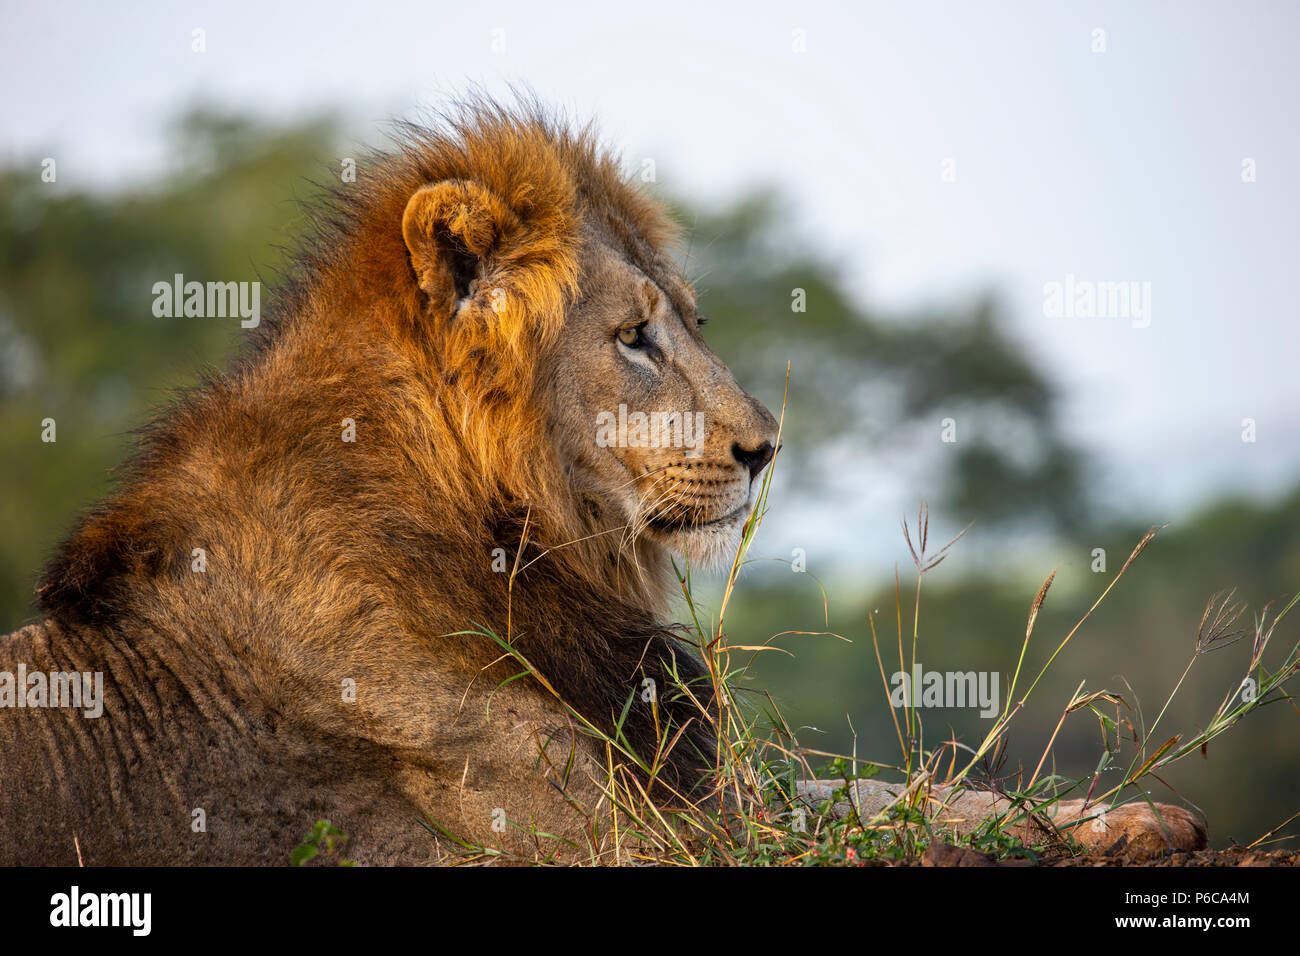 Close up headshot of male lion Panthera leo in the early morning sunlight - Stock Image